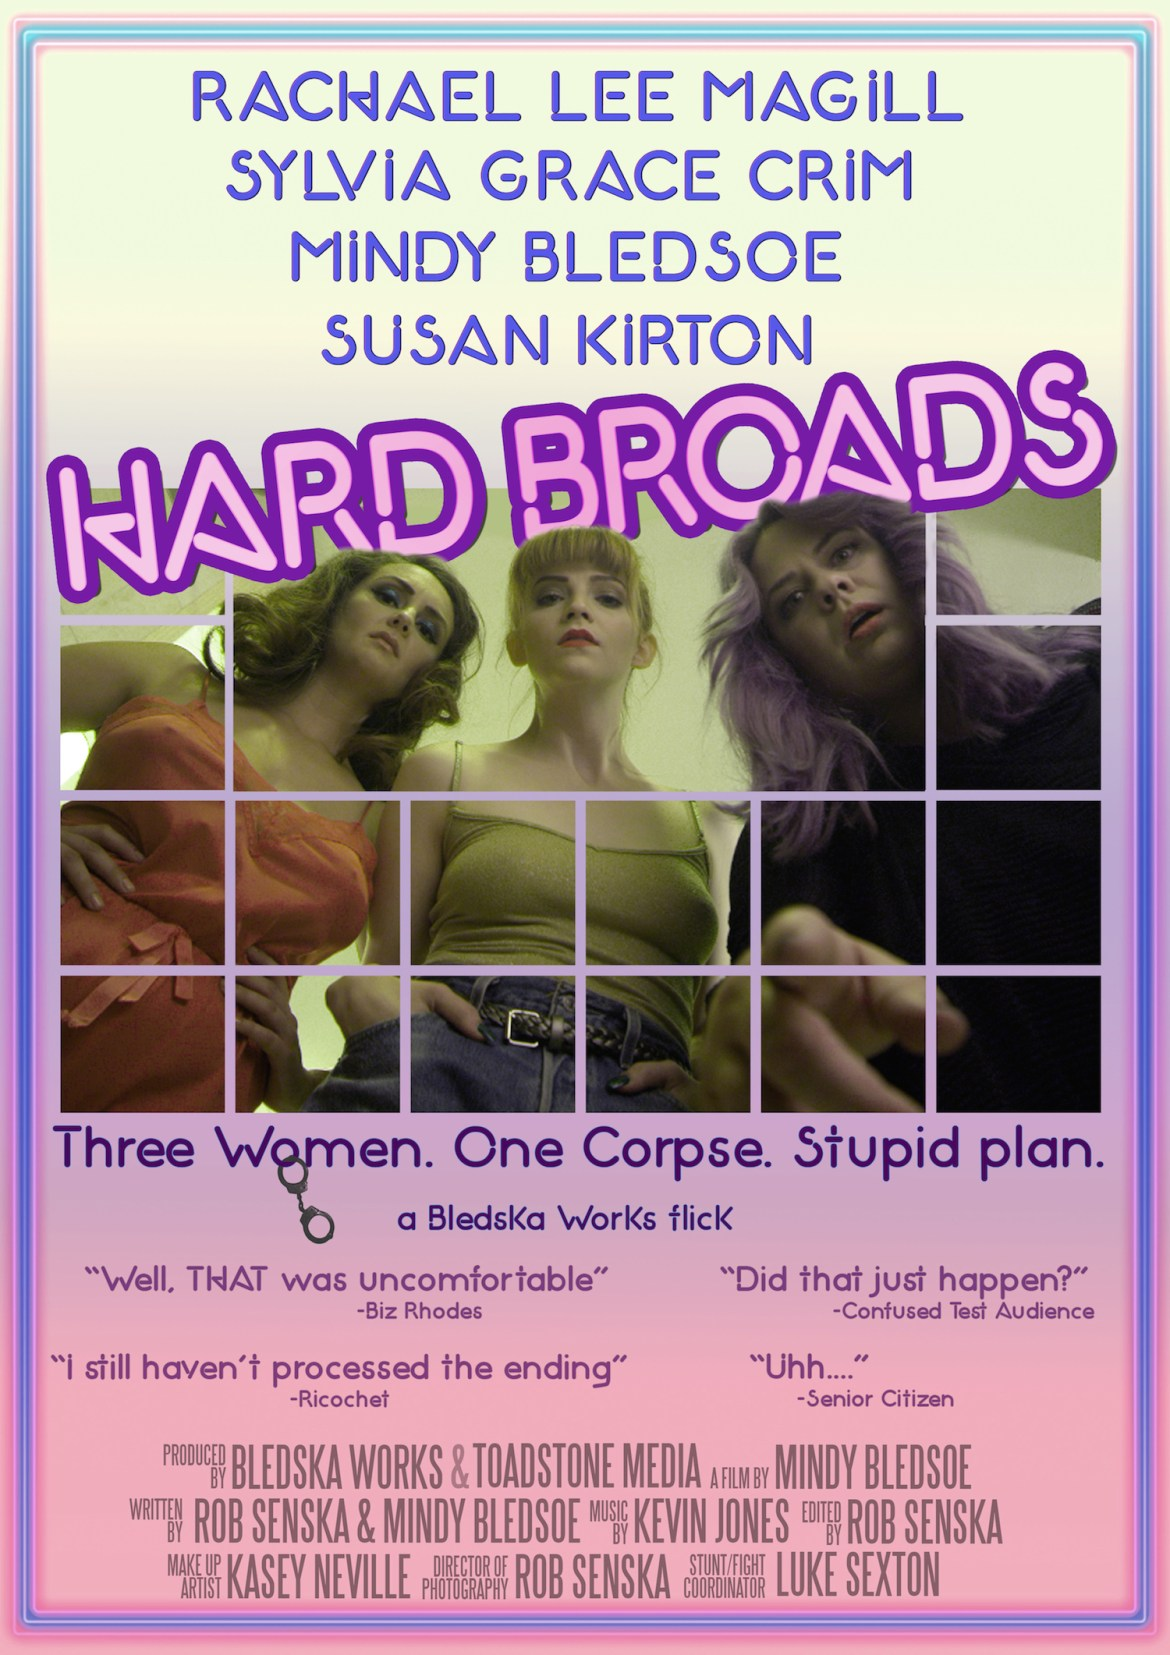 Hard Broads directed by Mindy Bledsoe